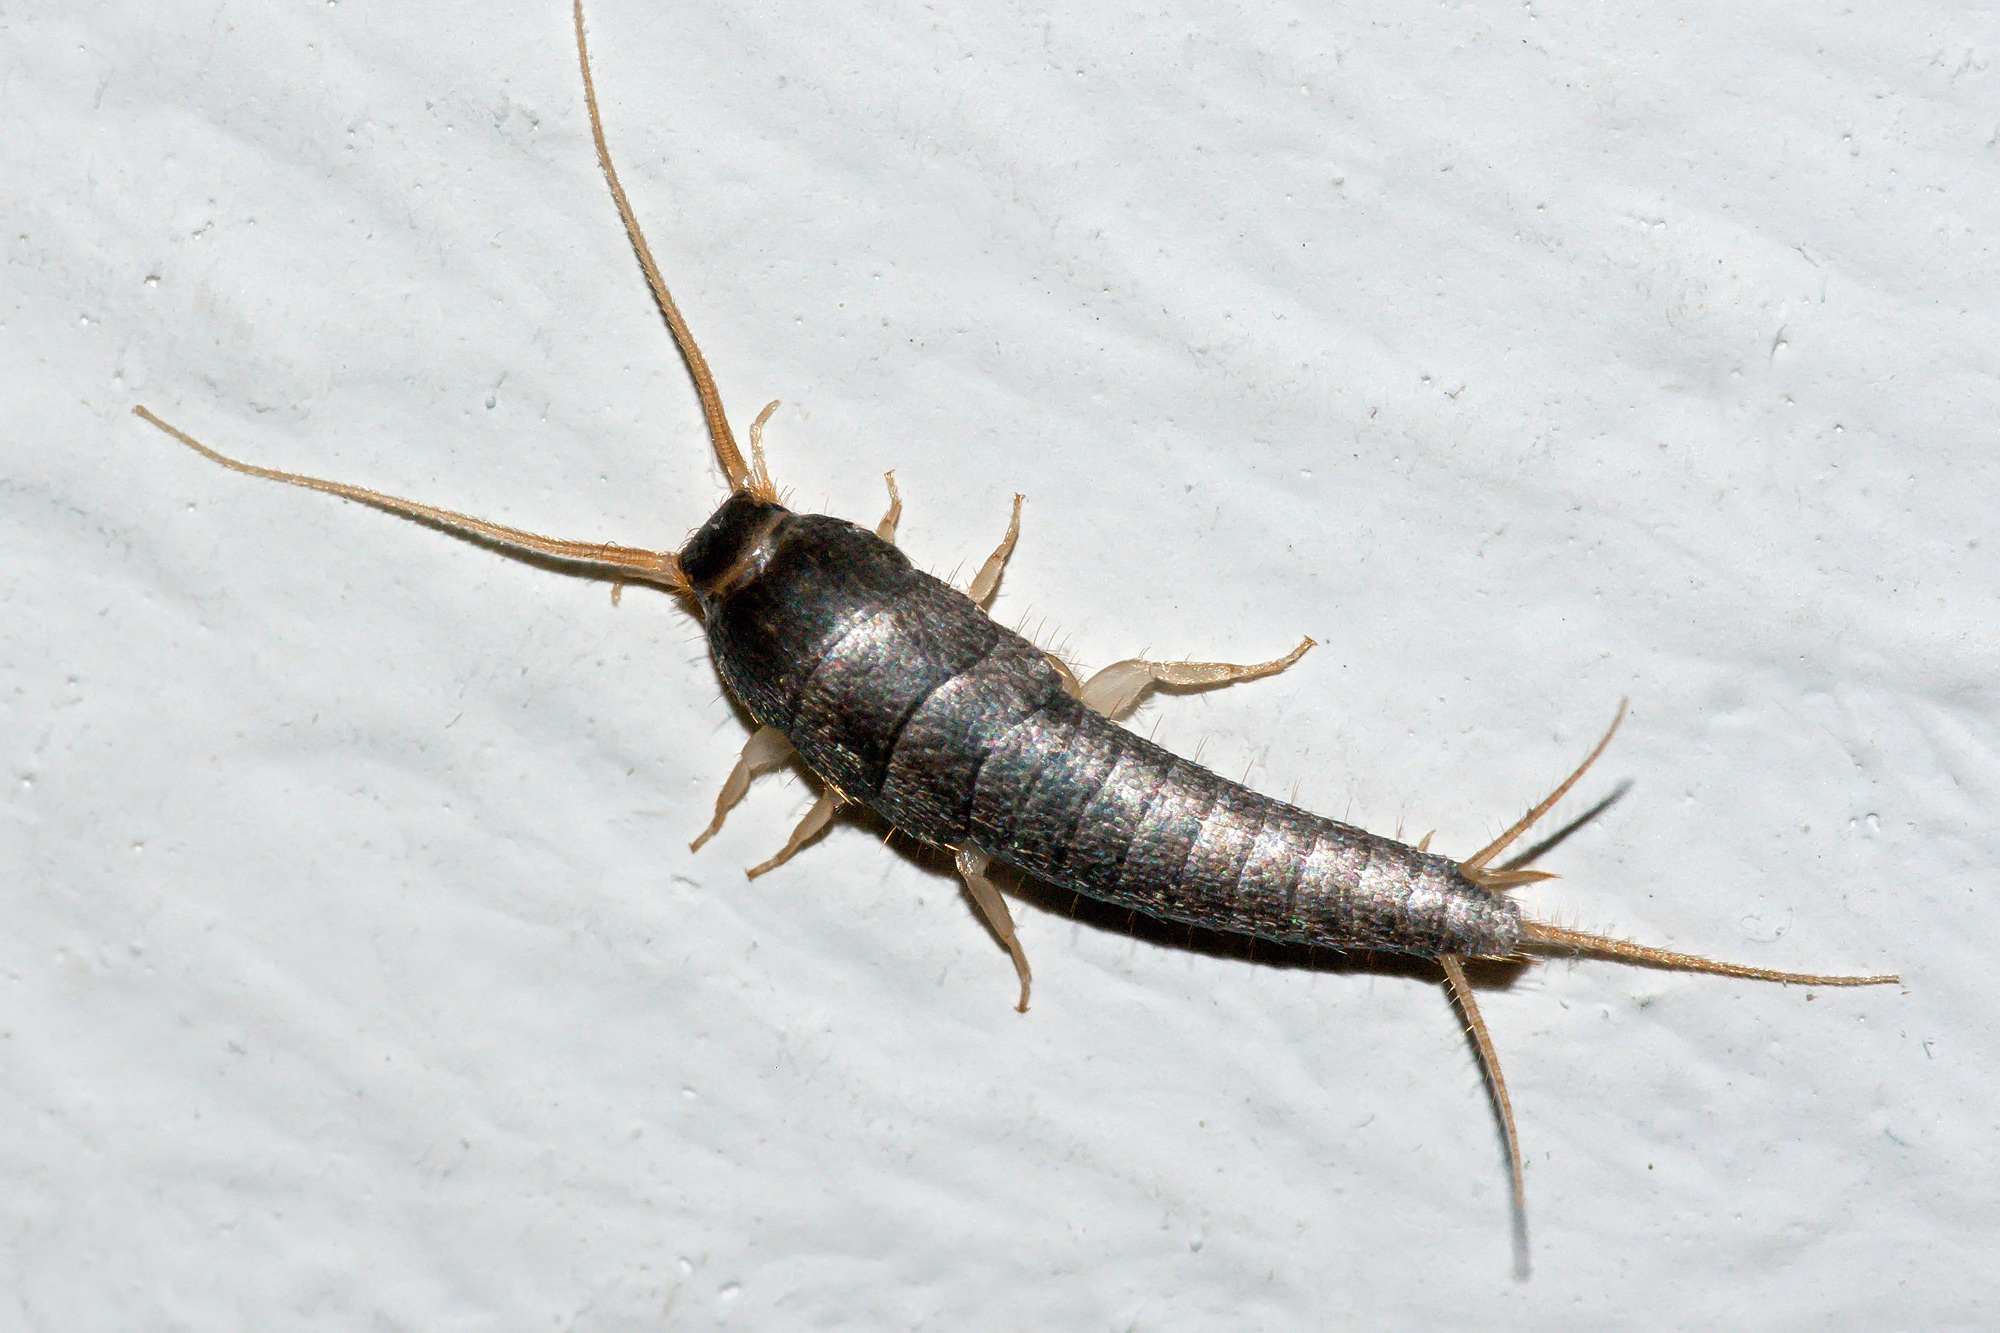 Silverfish - Click to find out more!